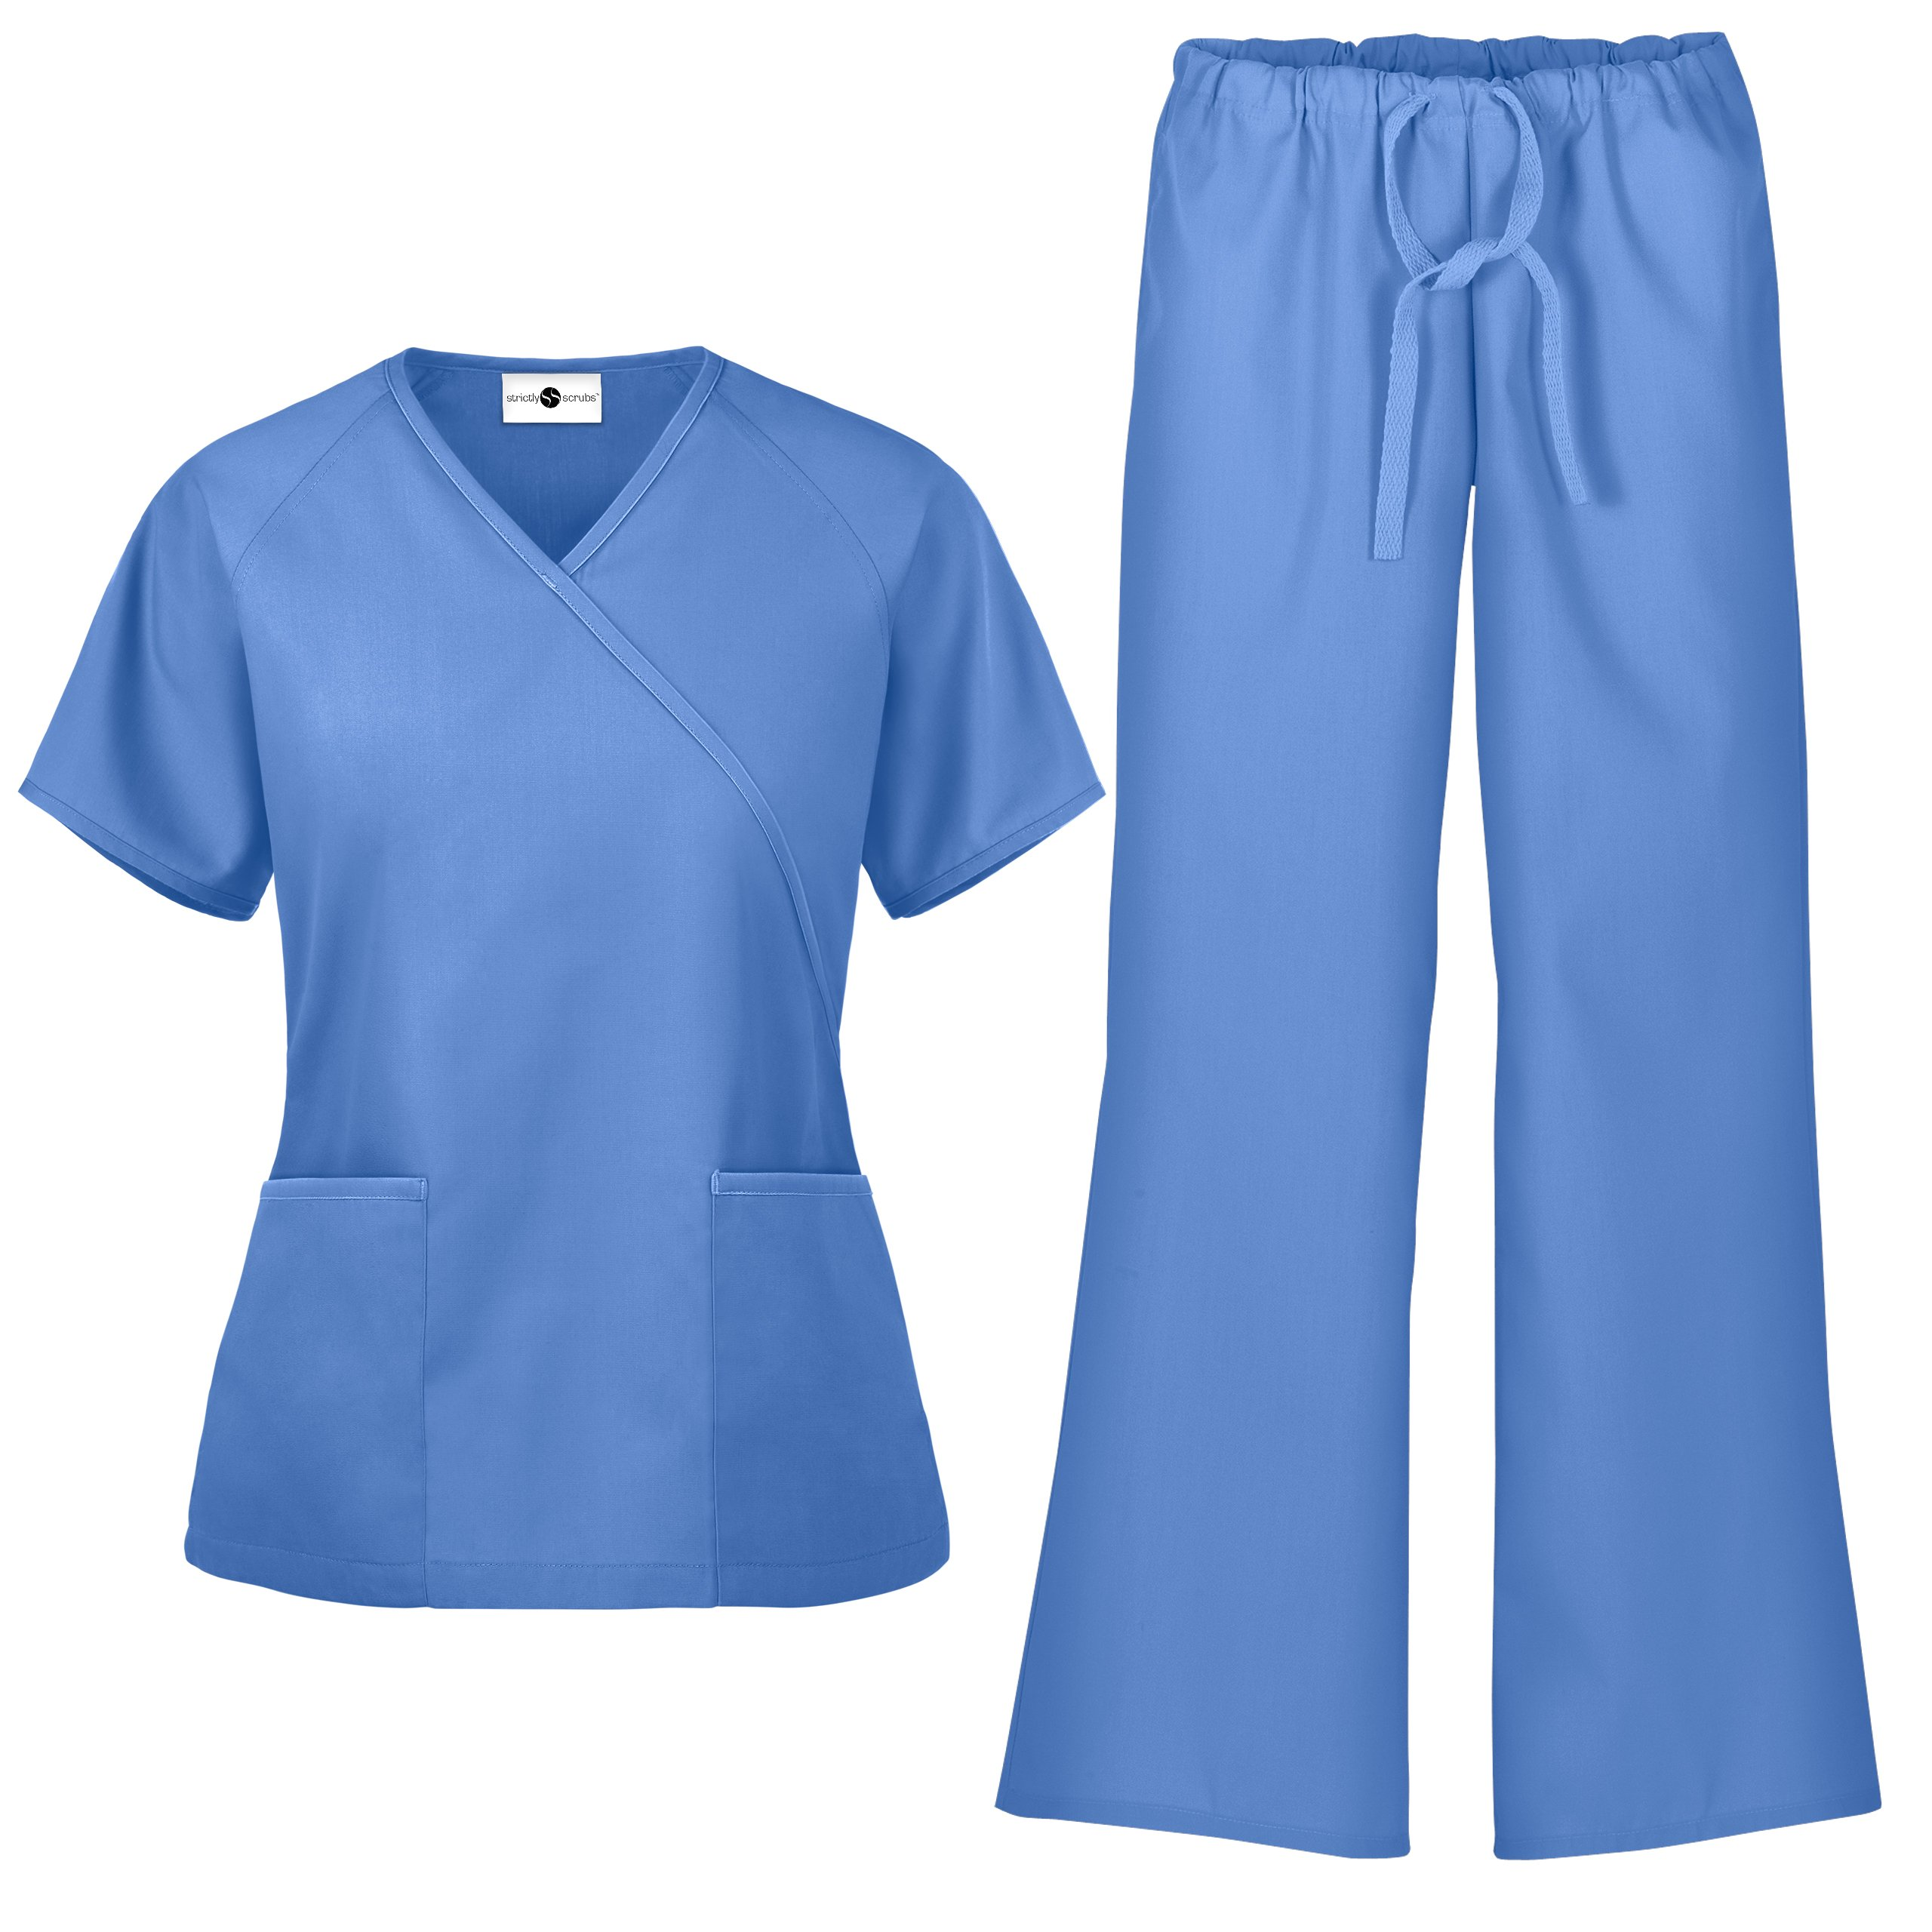 Women's Scrub Set/Medical Mock Wrap Top & Drawstring Scrub Pant (XS-3X, 7 Colors) (Large, Ceil)